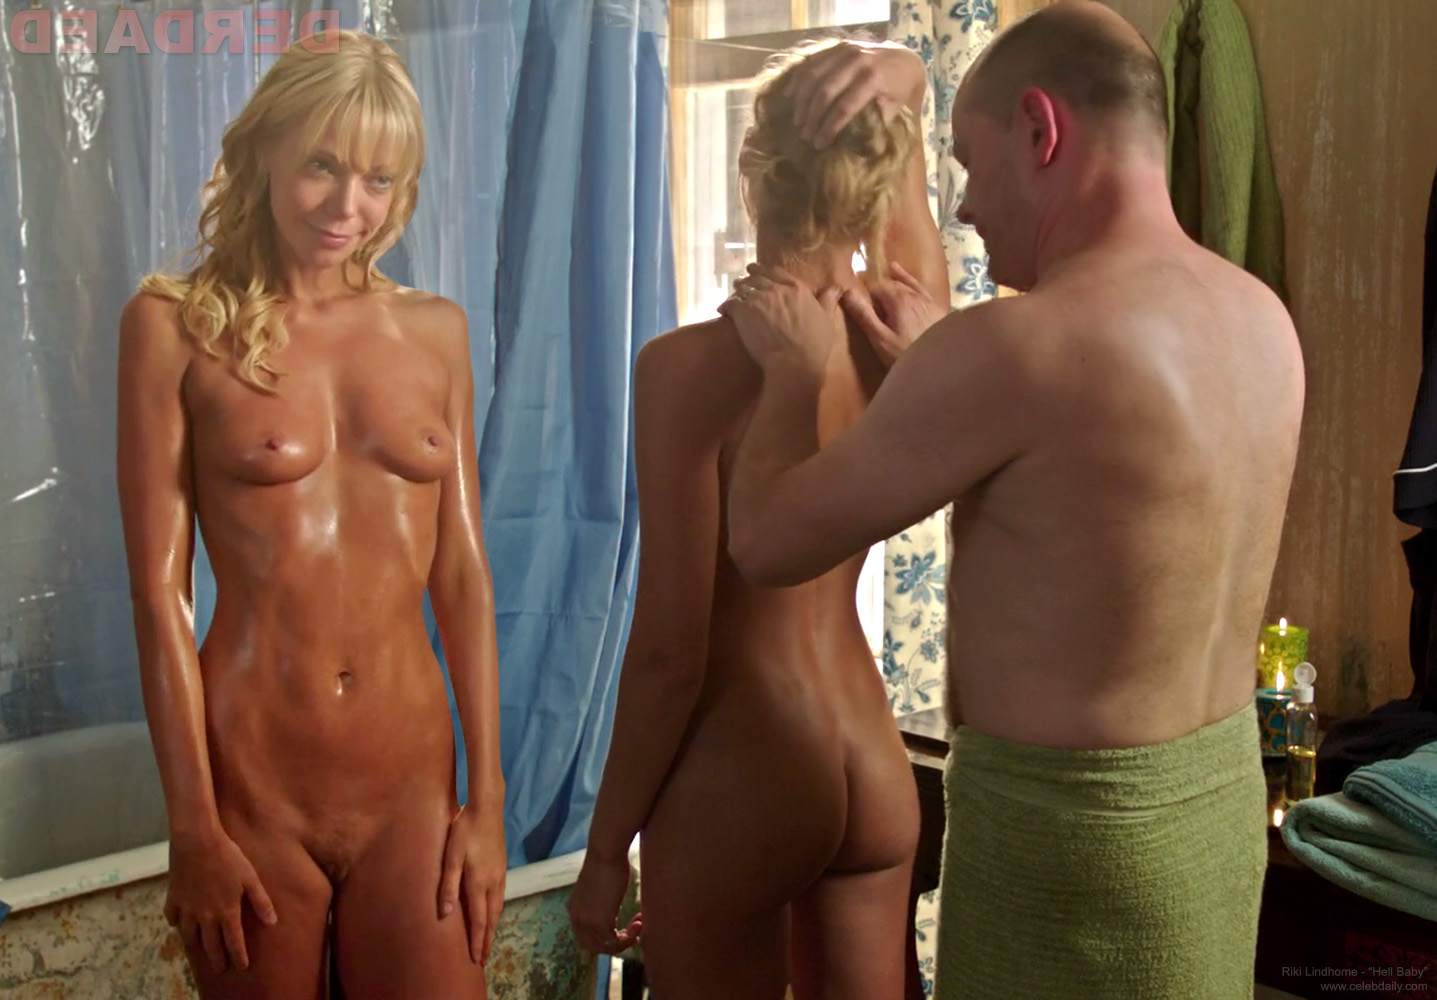 garfunkel and oates nude